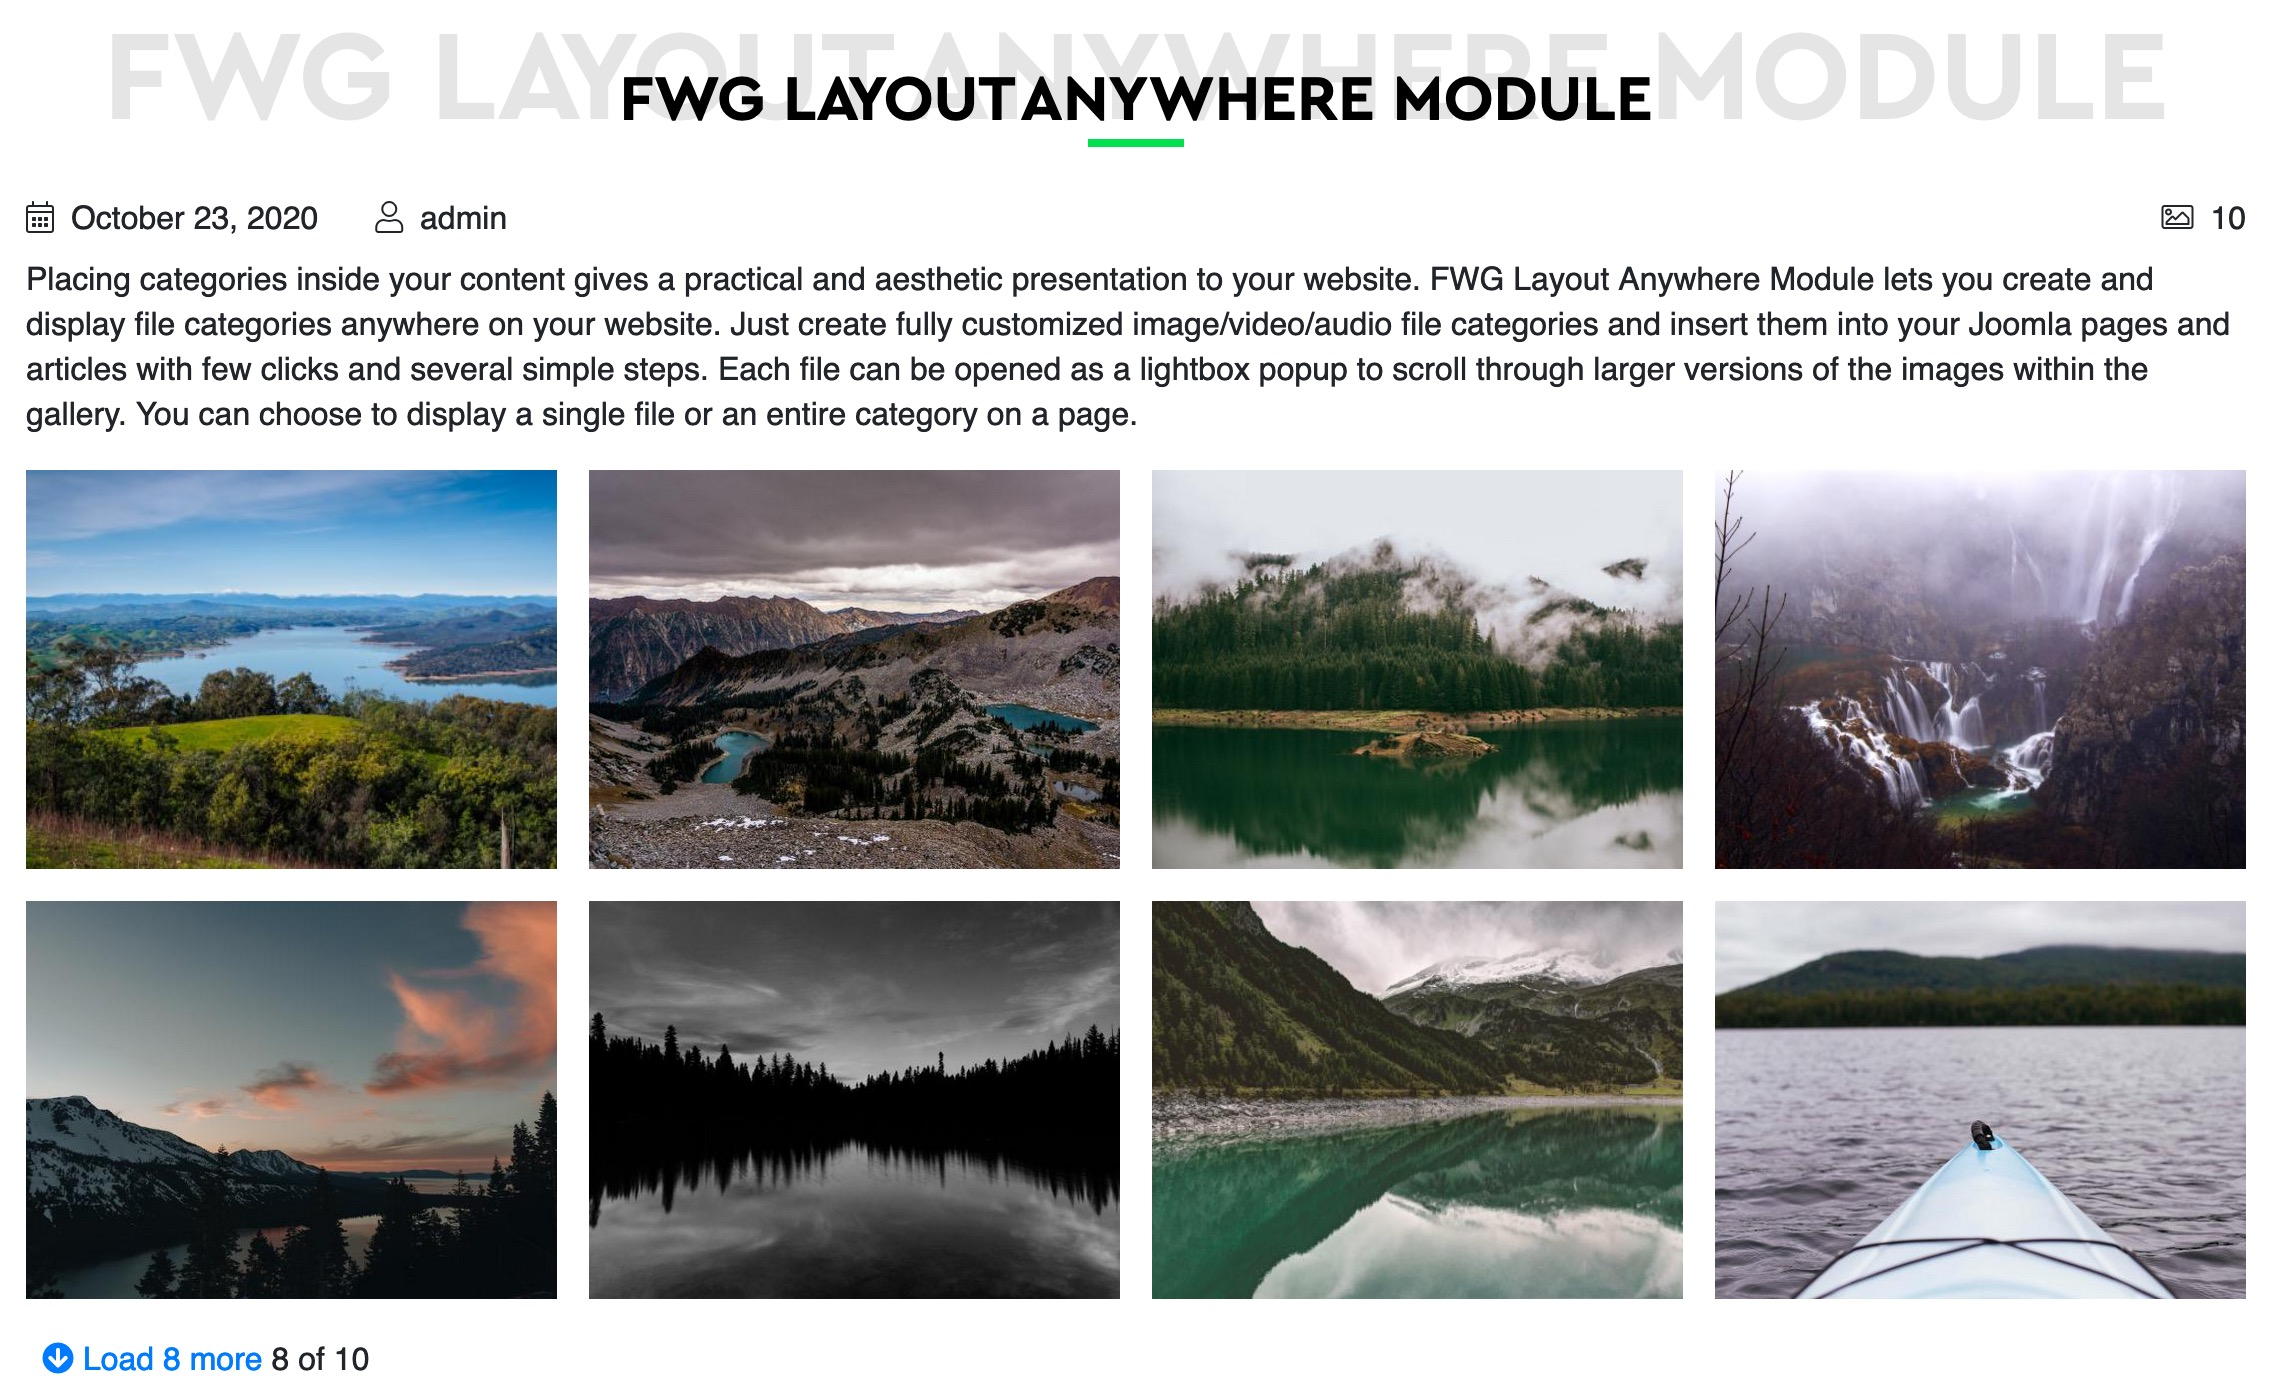 <p>Place a category or a single file view in a module position or content with all individual category settings.</p><ul><li>4 grids</li><li>Different designs</li><li>Show/hide items for gallery/file info</li><li>Use loadmodule plugin to insert a gallery into an article.</li></ul>